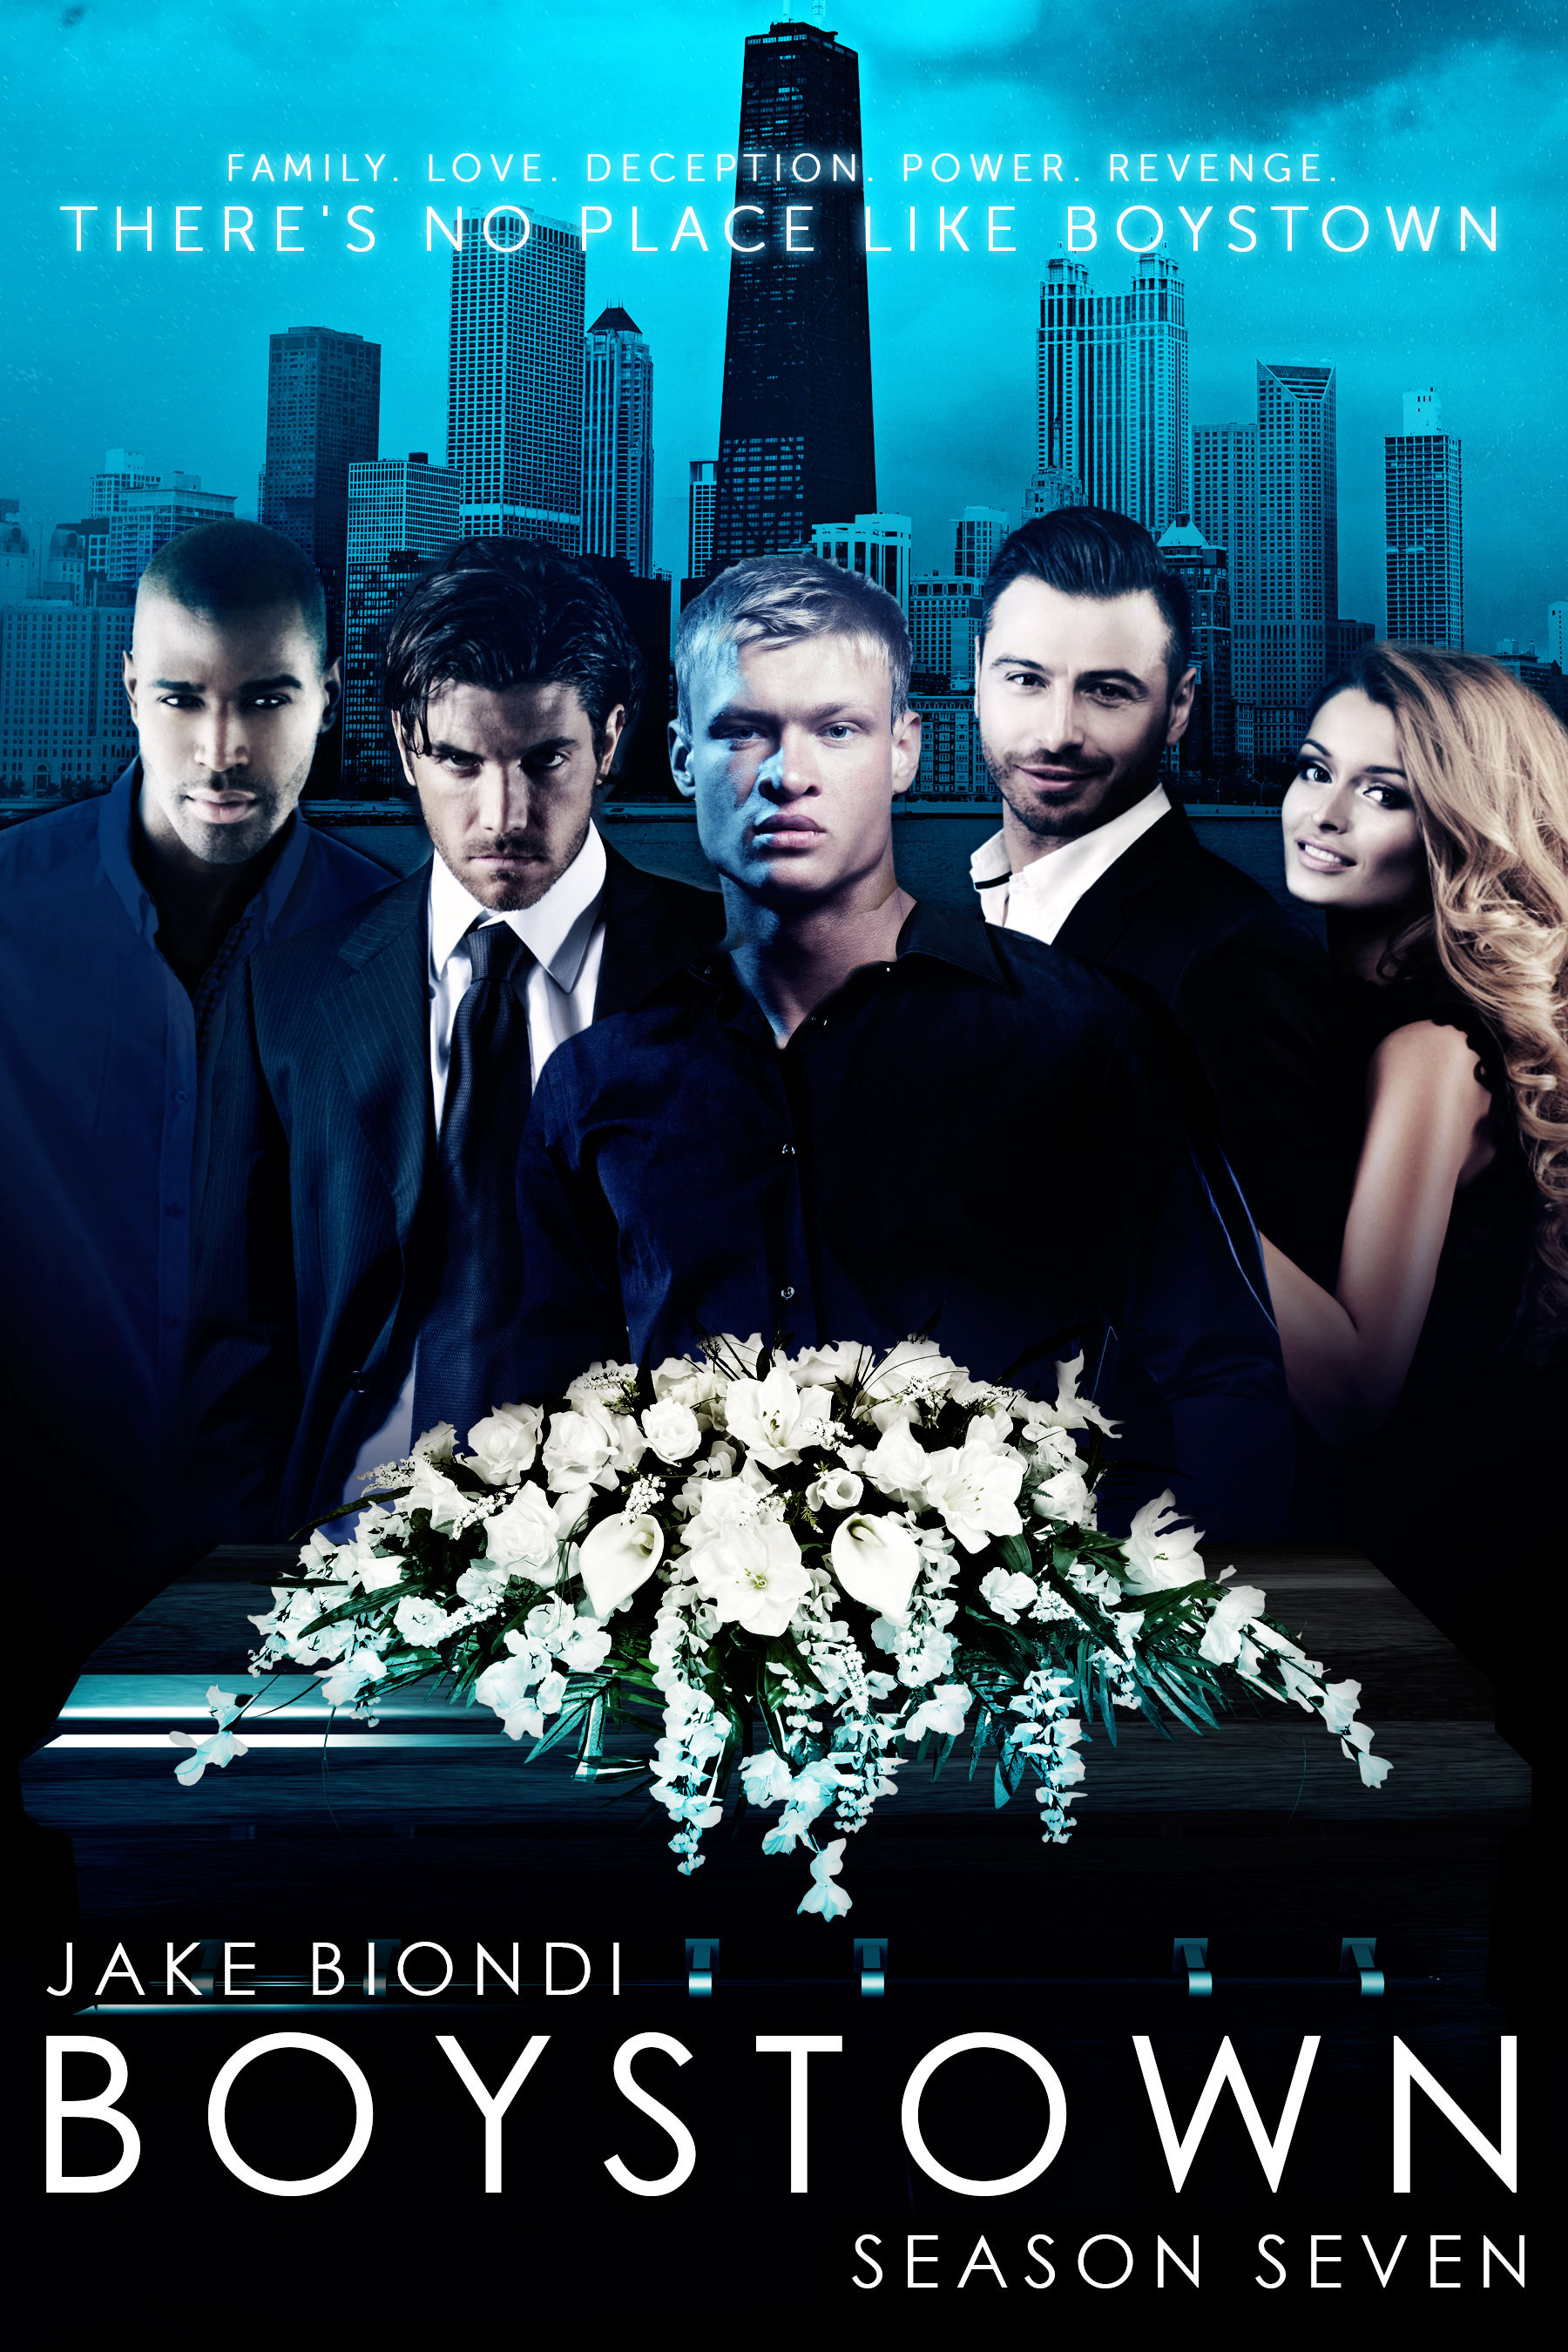 Review: Boystown (Season Seven) by Jake Biondi